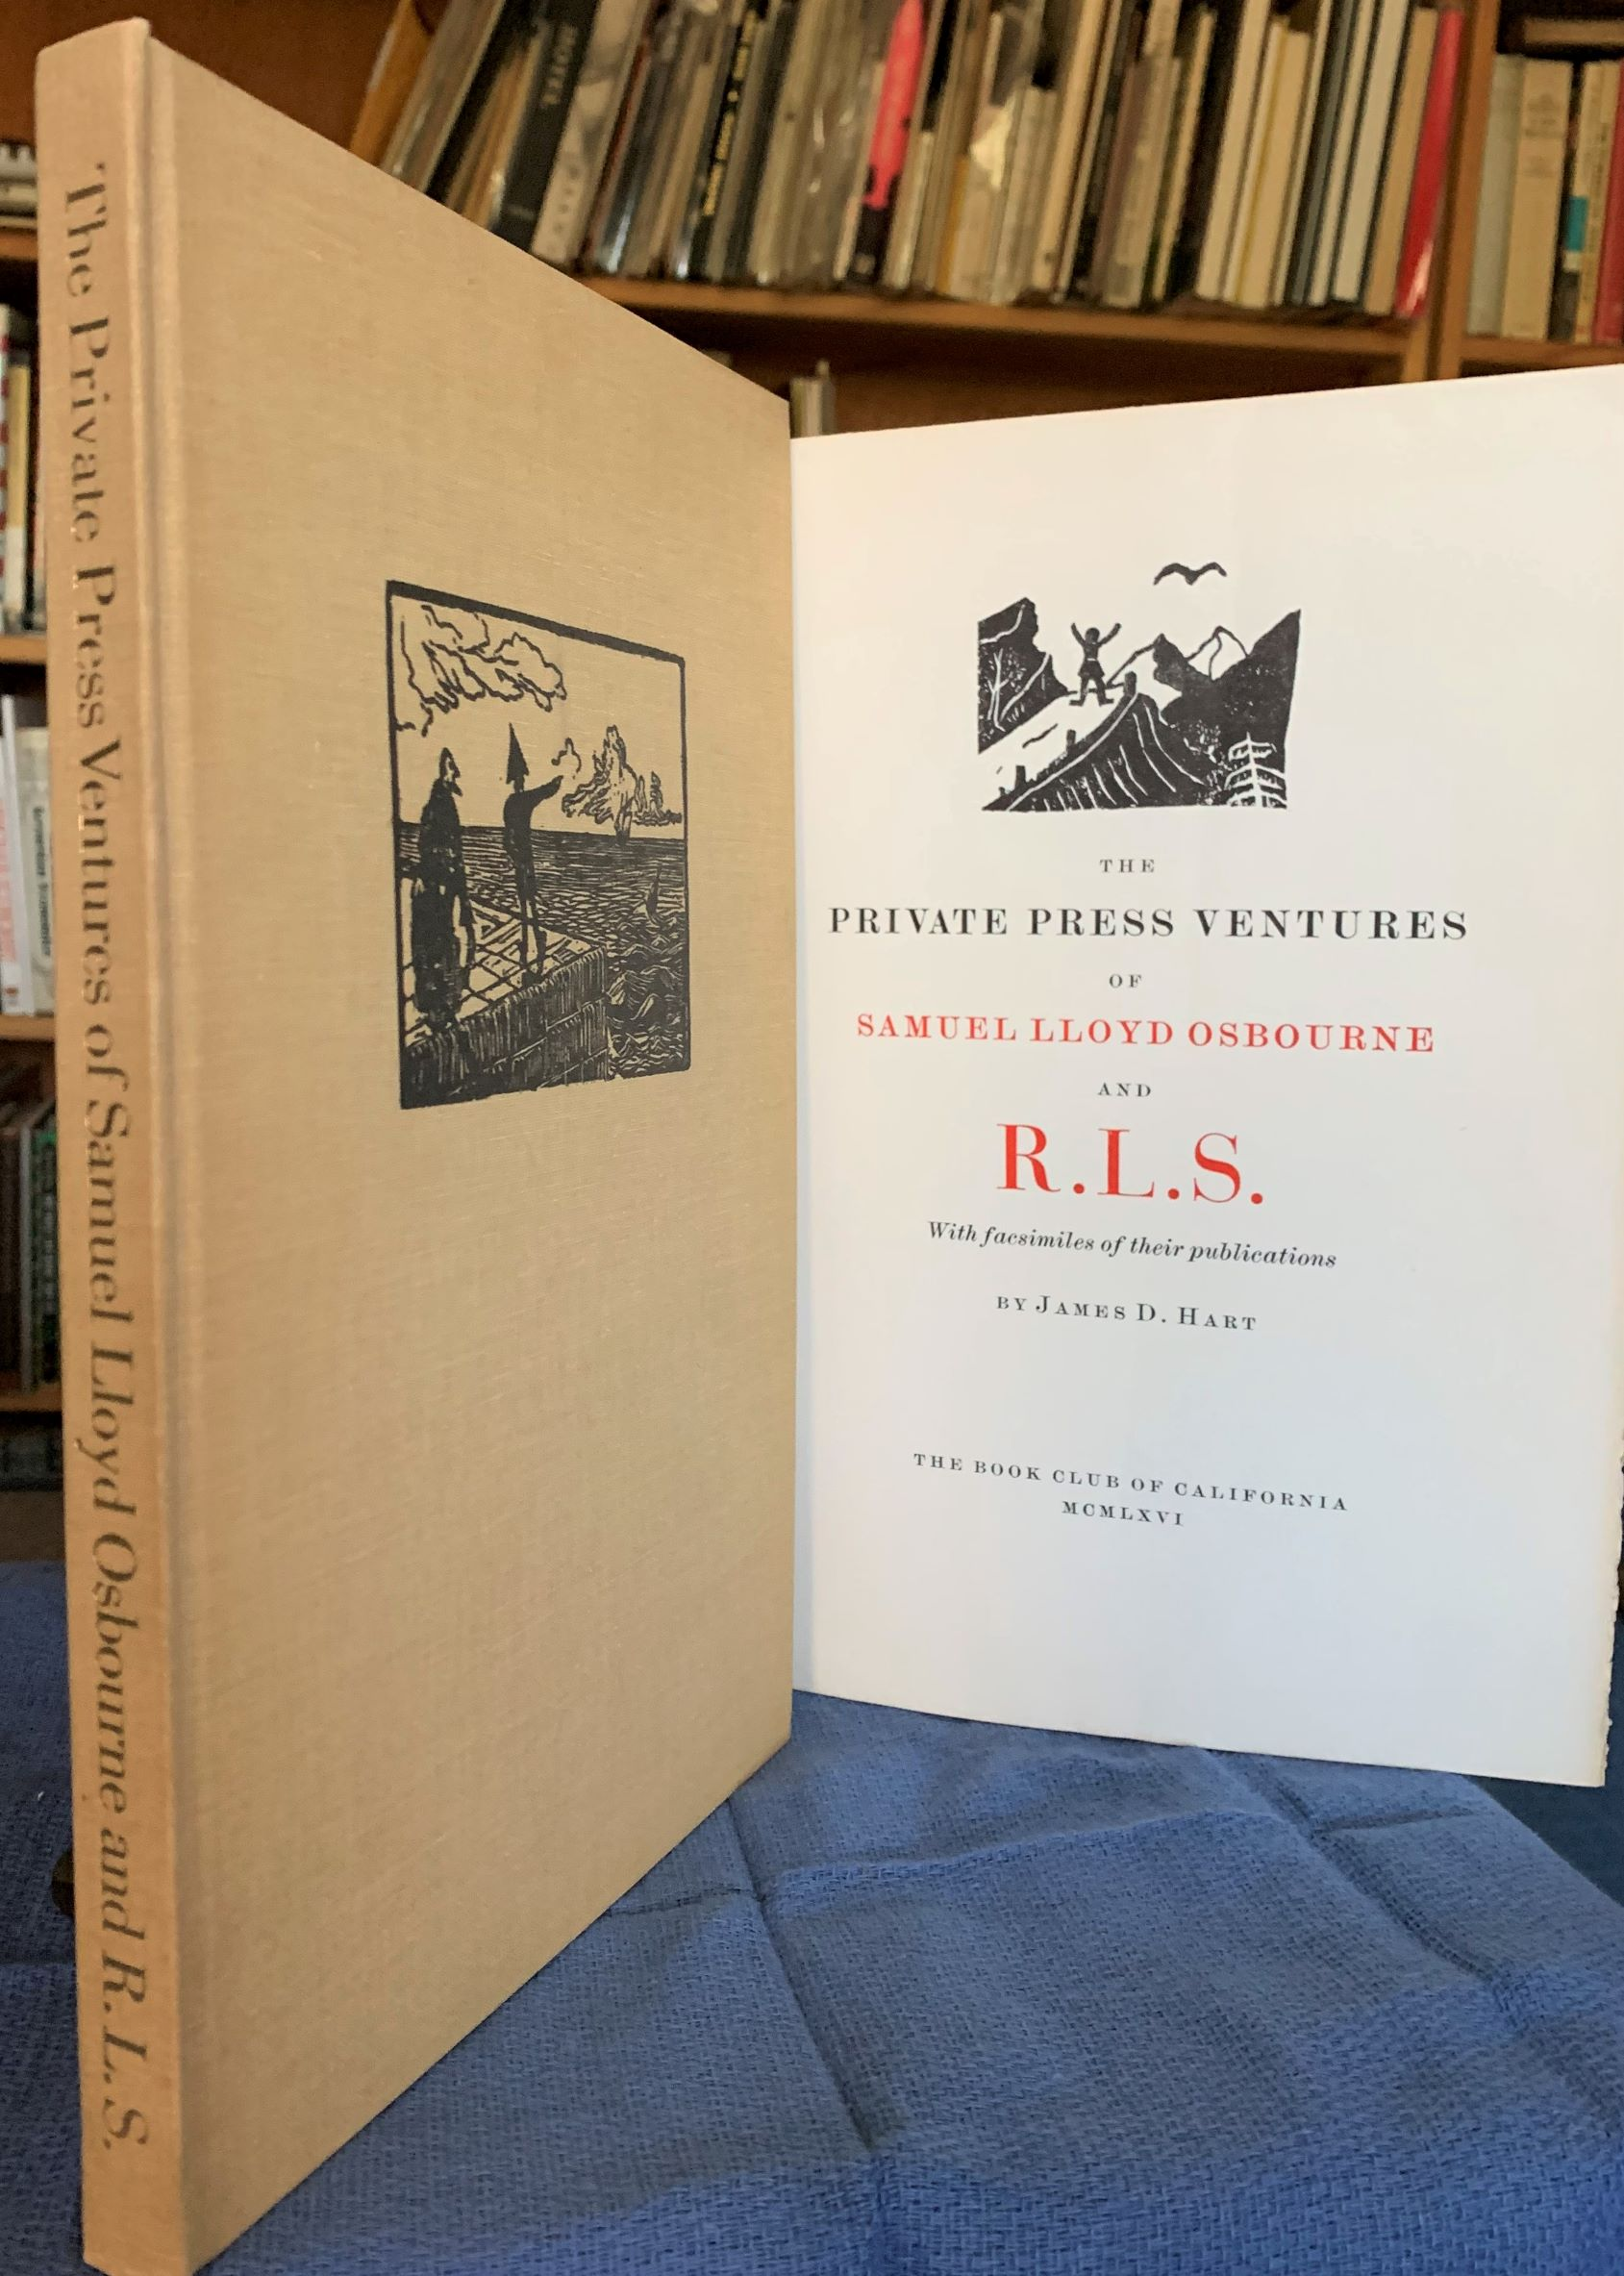 Image for The Private Press Ventures of Samuel Lloyd Osbourne and R. L. S. With facsimiles of their publications.